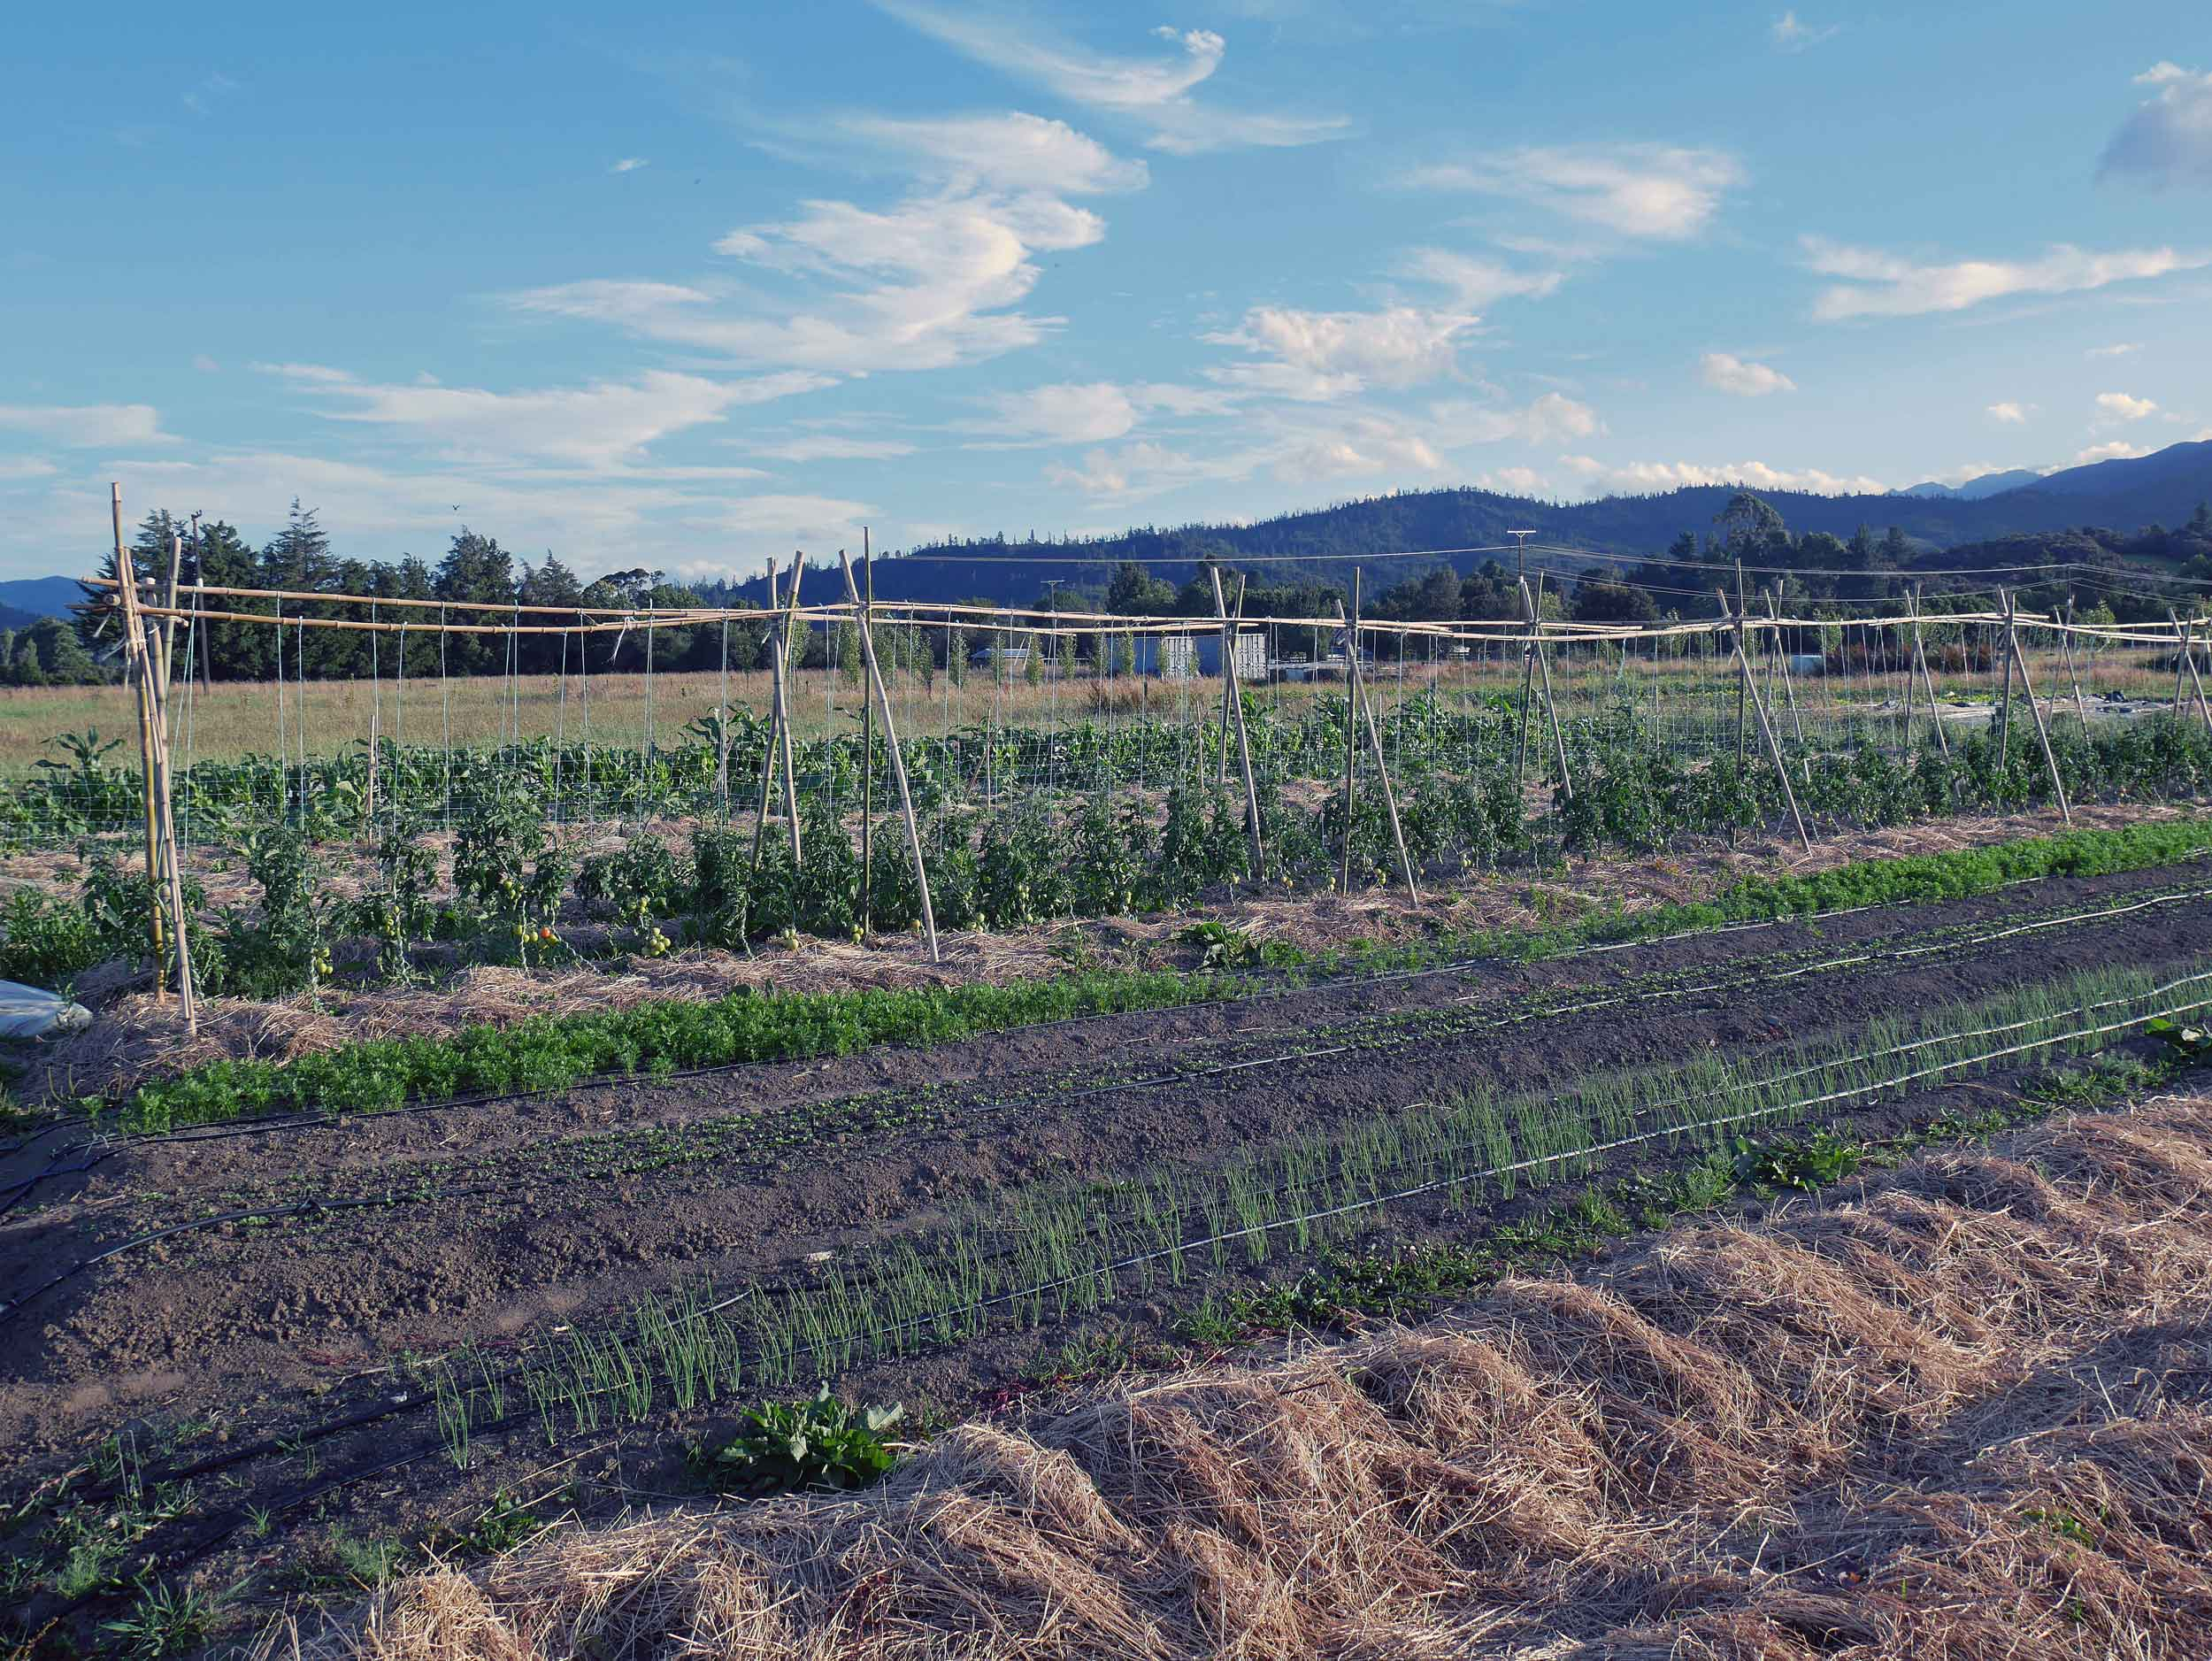 Puramahoi Fields is growing lots of tomatoes, which do not like the NZ weather, by tying the vines up on trellises to expose to the sun and keep them dry.